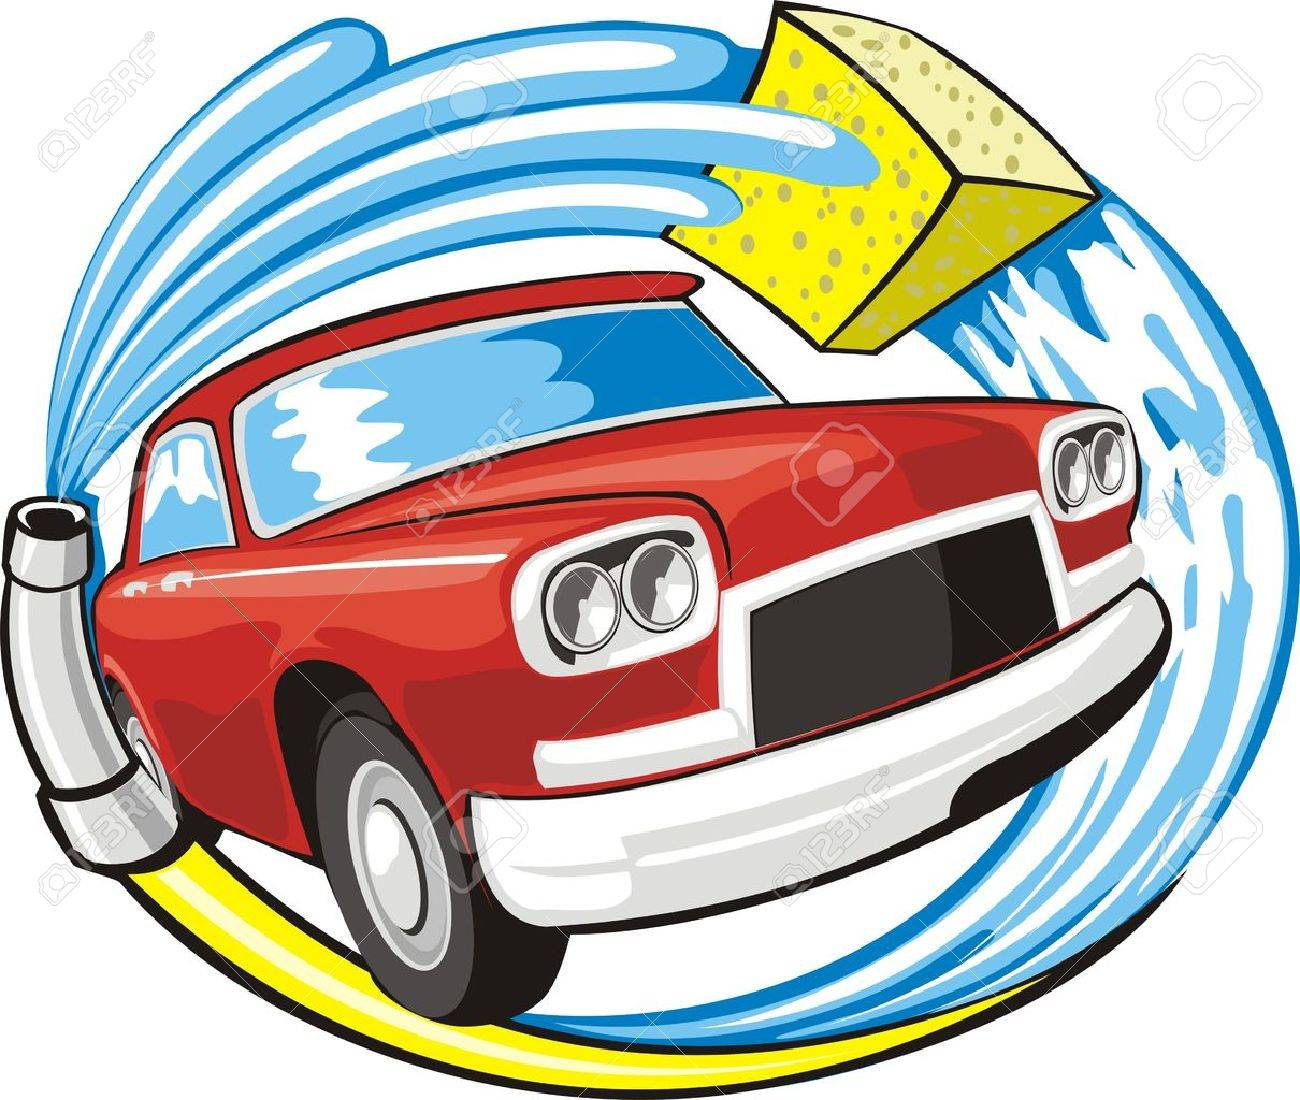 car washing sign royalty free cliparts vectors and stock rh 123rf com car wash vector art car wash vector icon